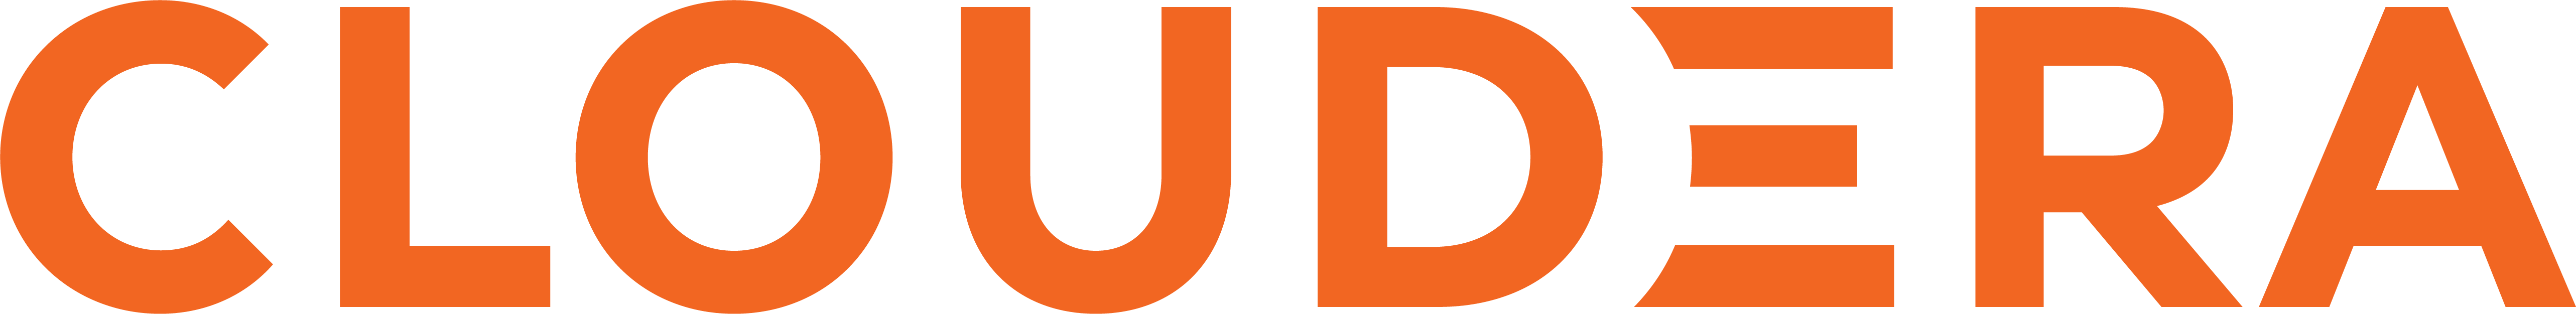 Cloudera Orange Logo